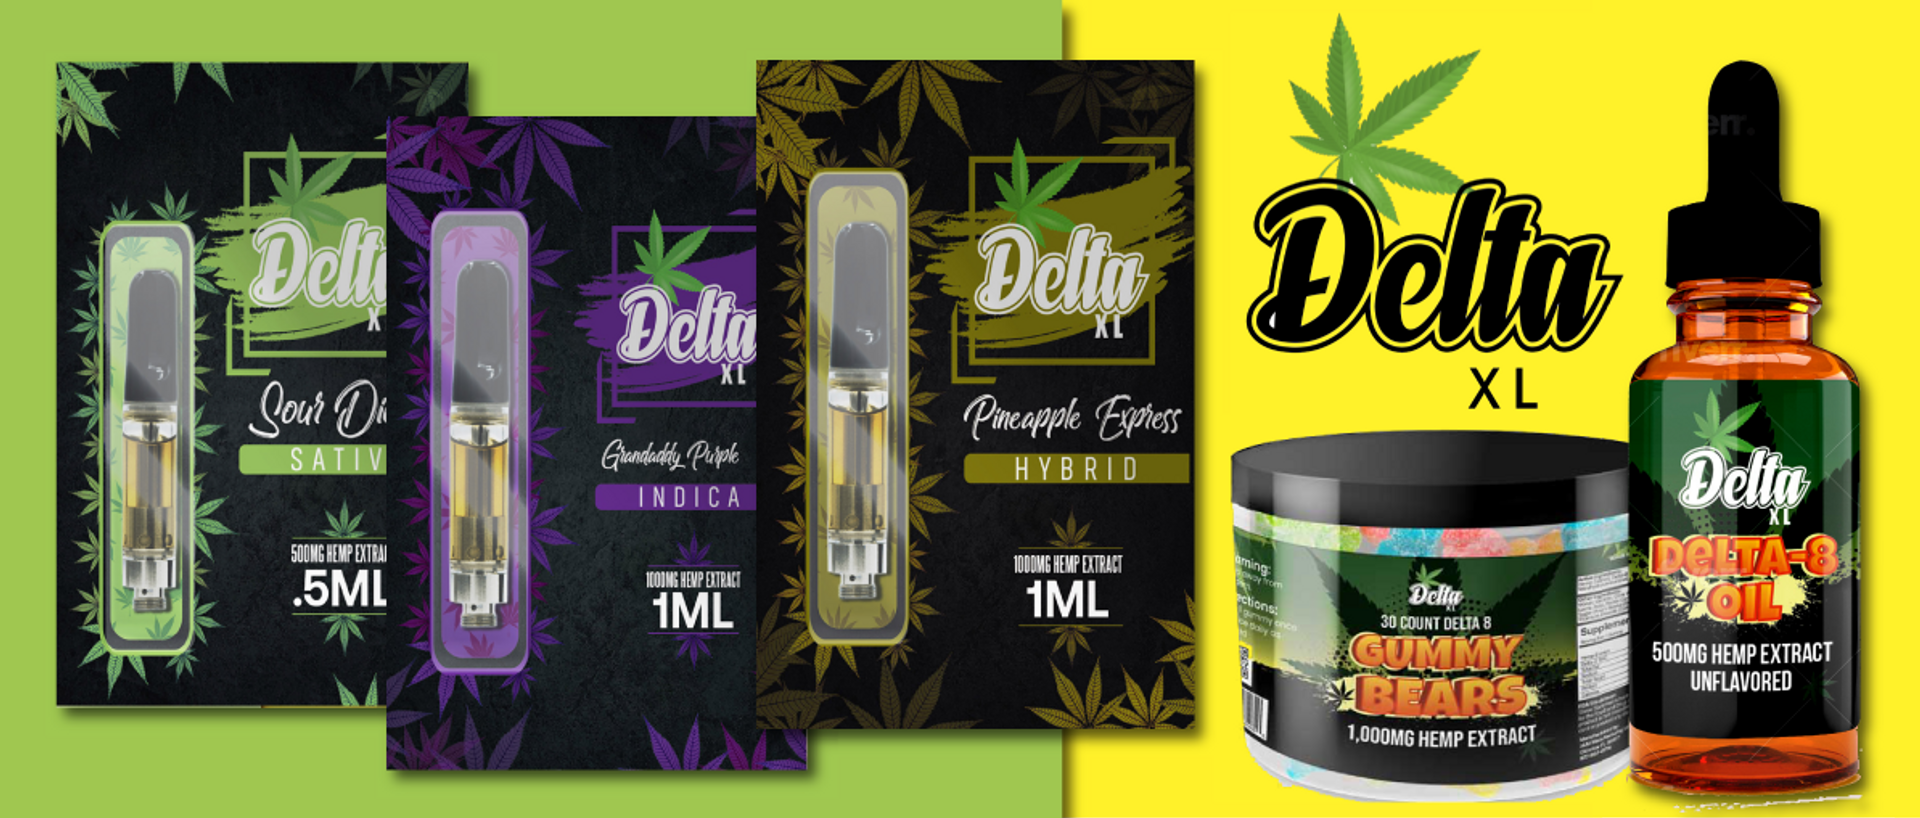 Crafted with passion, knowledge, and years of expertise, Delta XL Pure D8 Products are formulated with Delta 8 THC distillate providing an uplifting yet relaxing effect. Carefully formulated and manufactured in our state approved facility, you can rest as